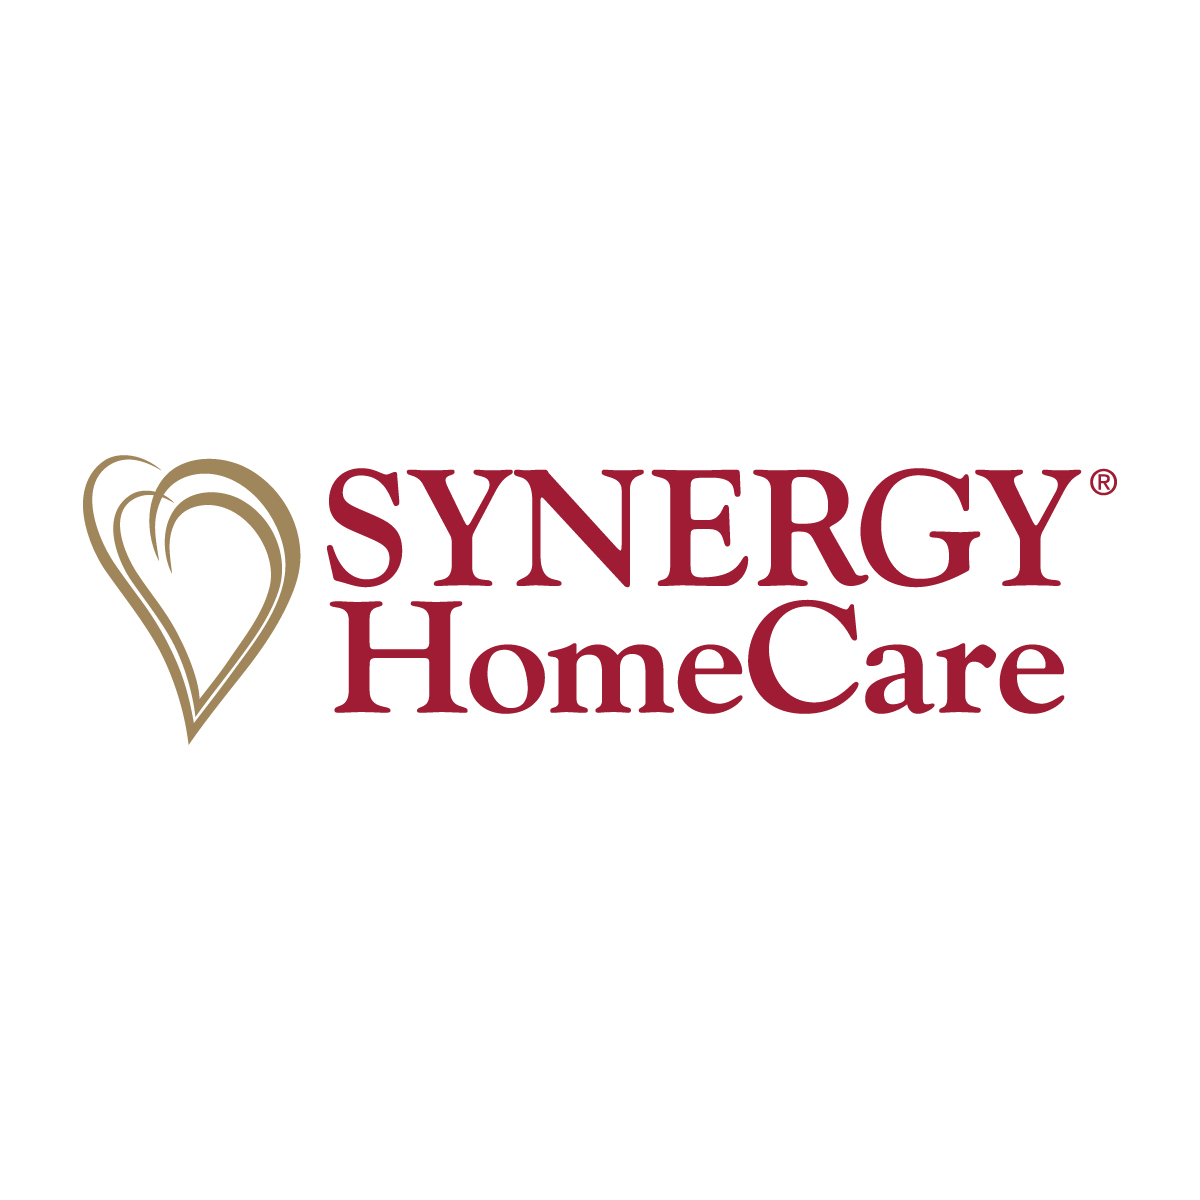 SYNERGY HomeCare of Oak Park image 1